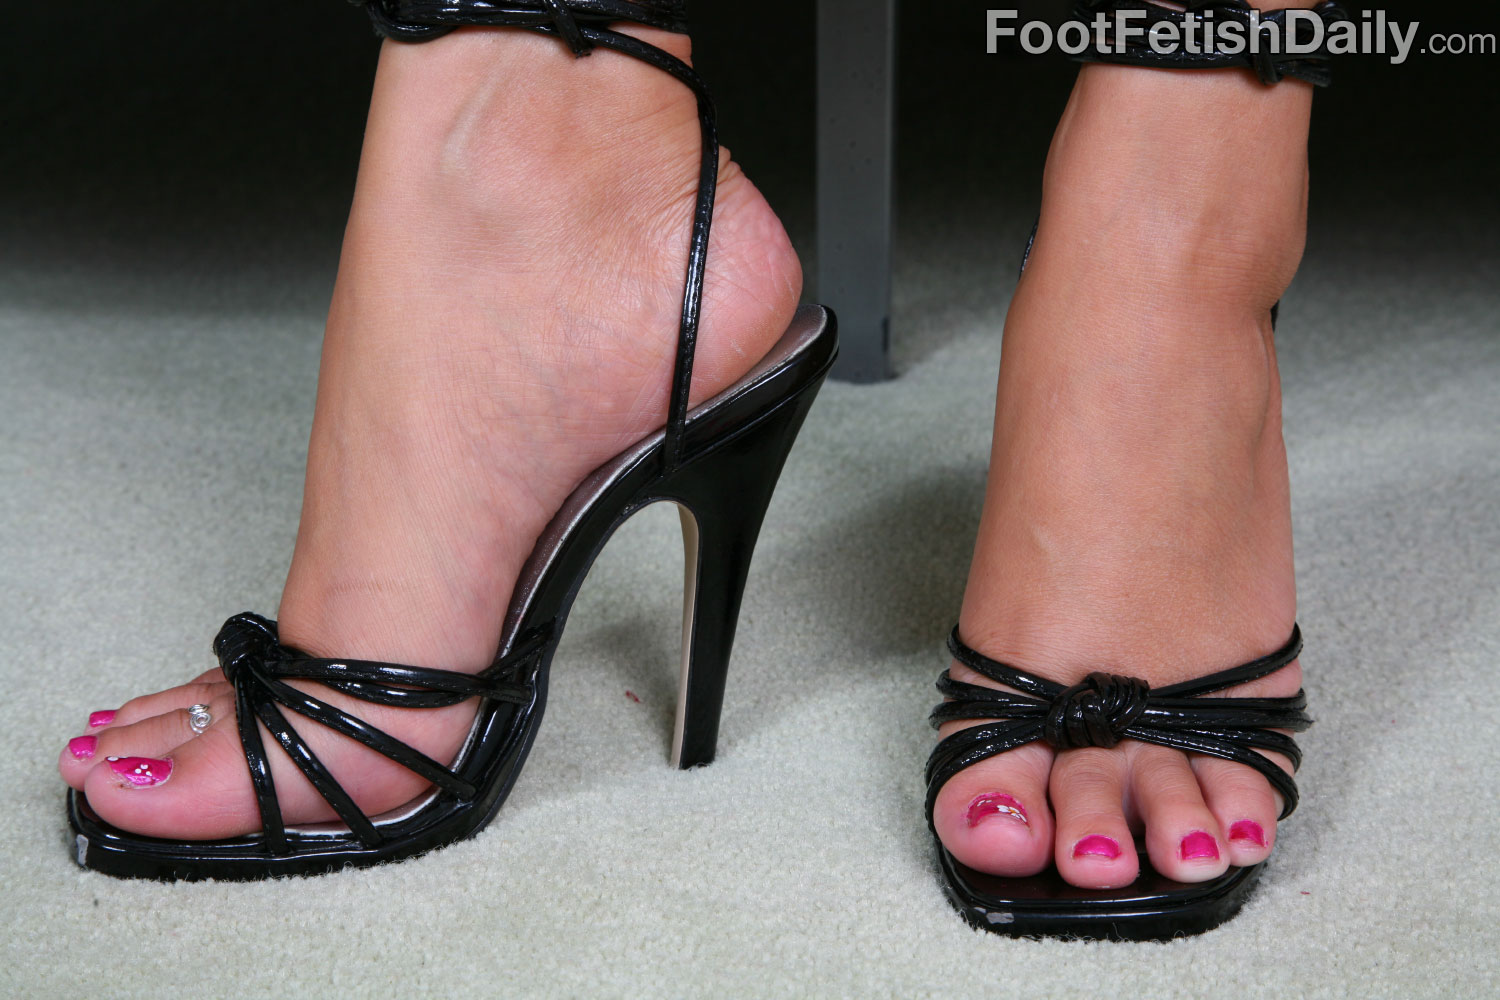 high heels foot fetish